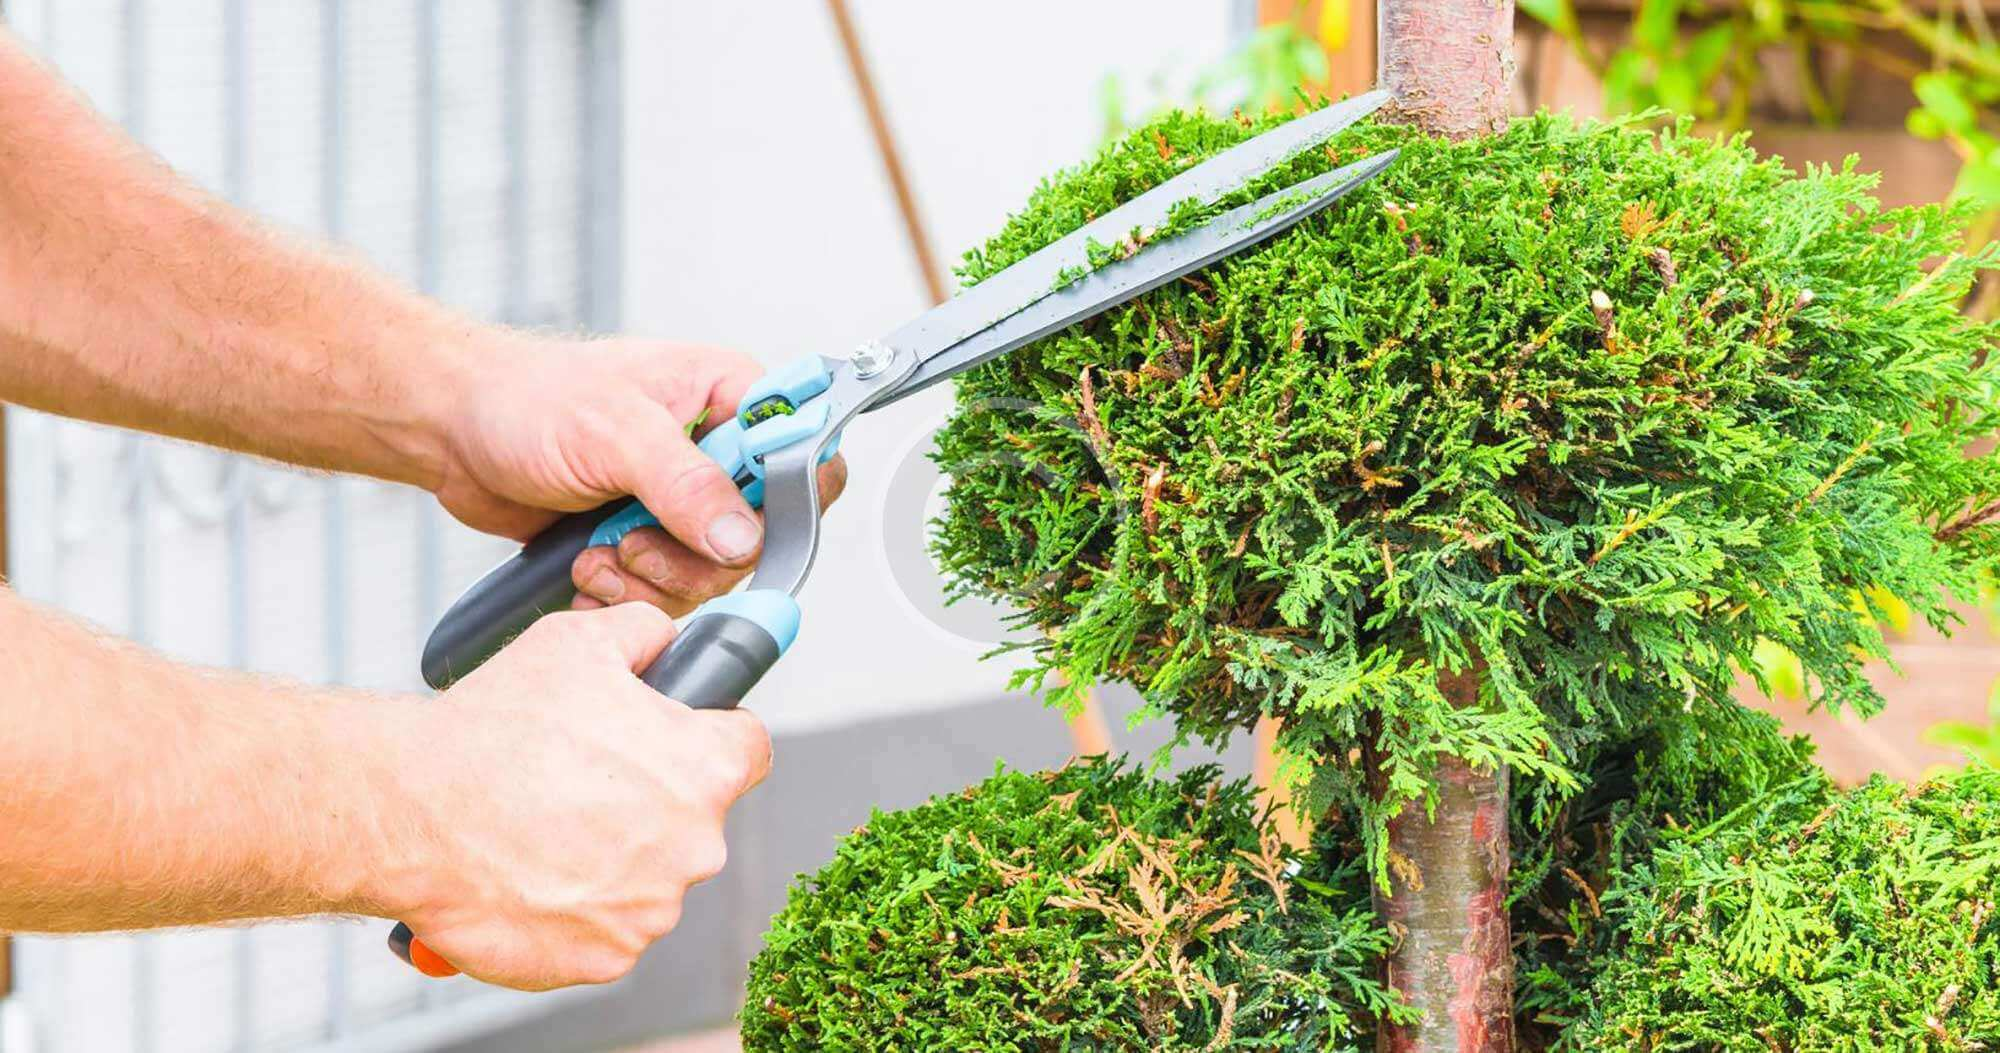 Contact Us-Myrtle Beach Tree Trimming and Stump Grinding Services-We Offer Tree Trimming Services, Tree Removal, Tree Pruning, Tree Cutting, Residential and Commercial Tree Trimming Services, Storm Damage, Emergency Tree Removal, Land Clearing, Tree Companies, Tree Care Service, Stump Grinding, and we're the Best Tree Trimming Company Near You Guaranteed!